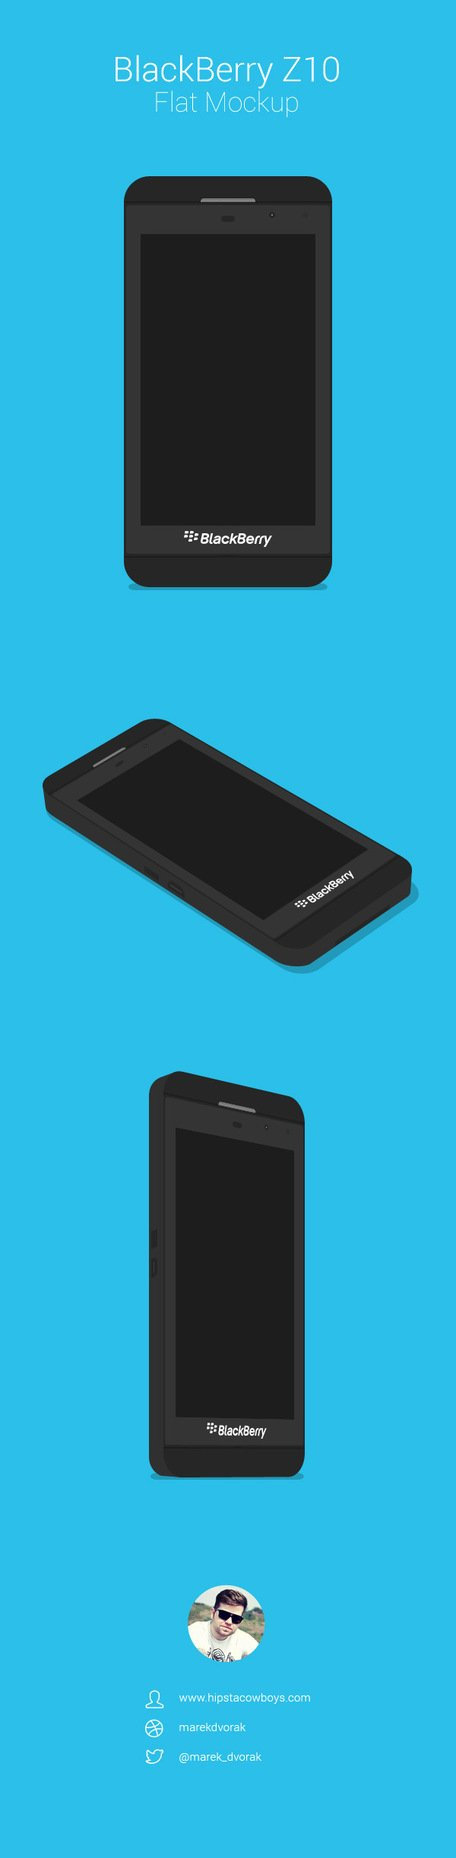 BlackBerry Z10 maquete plana